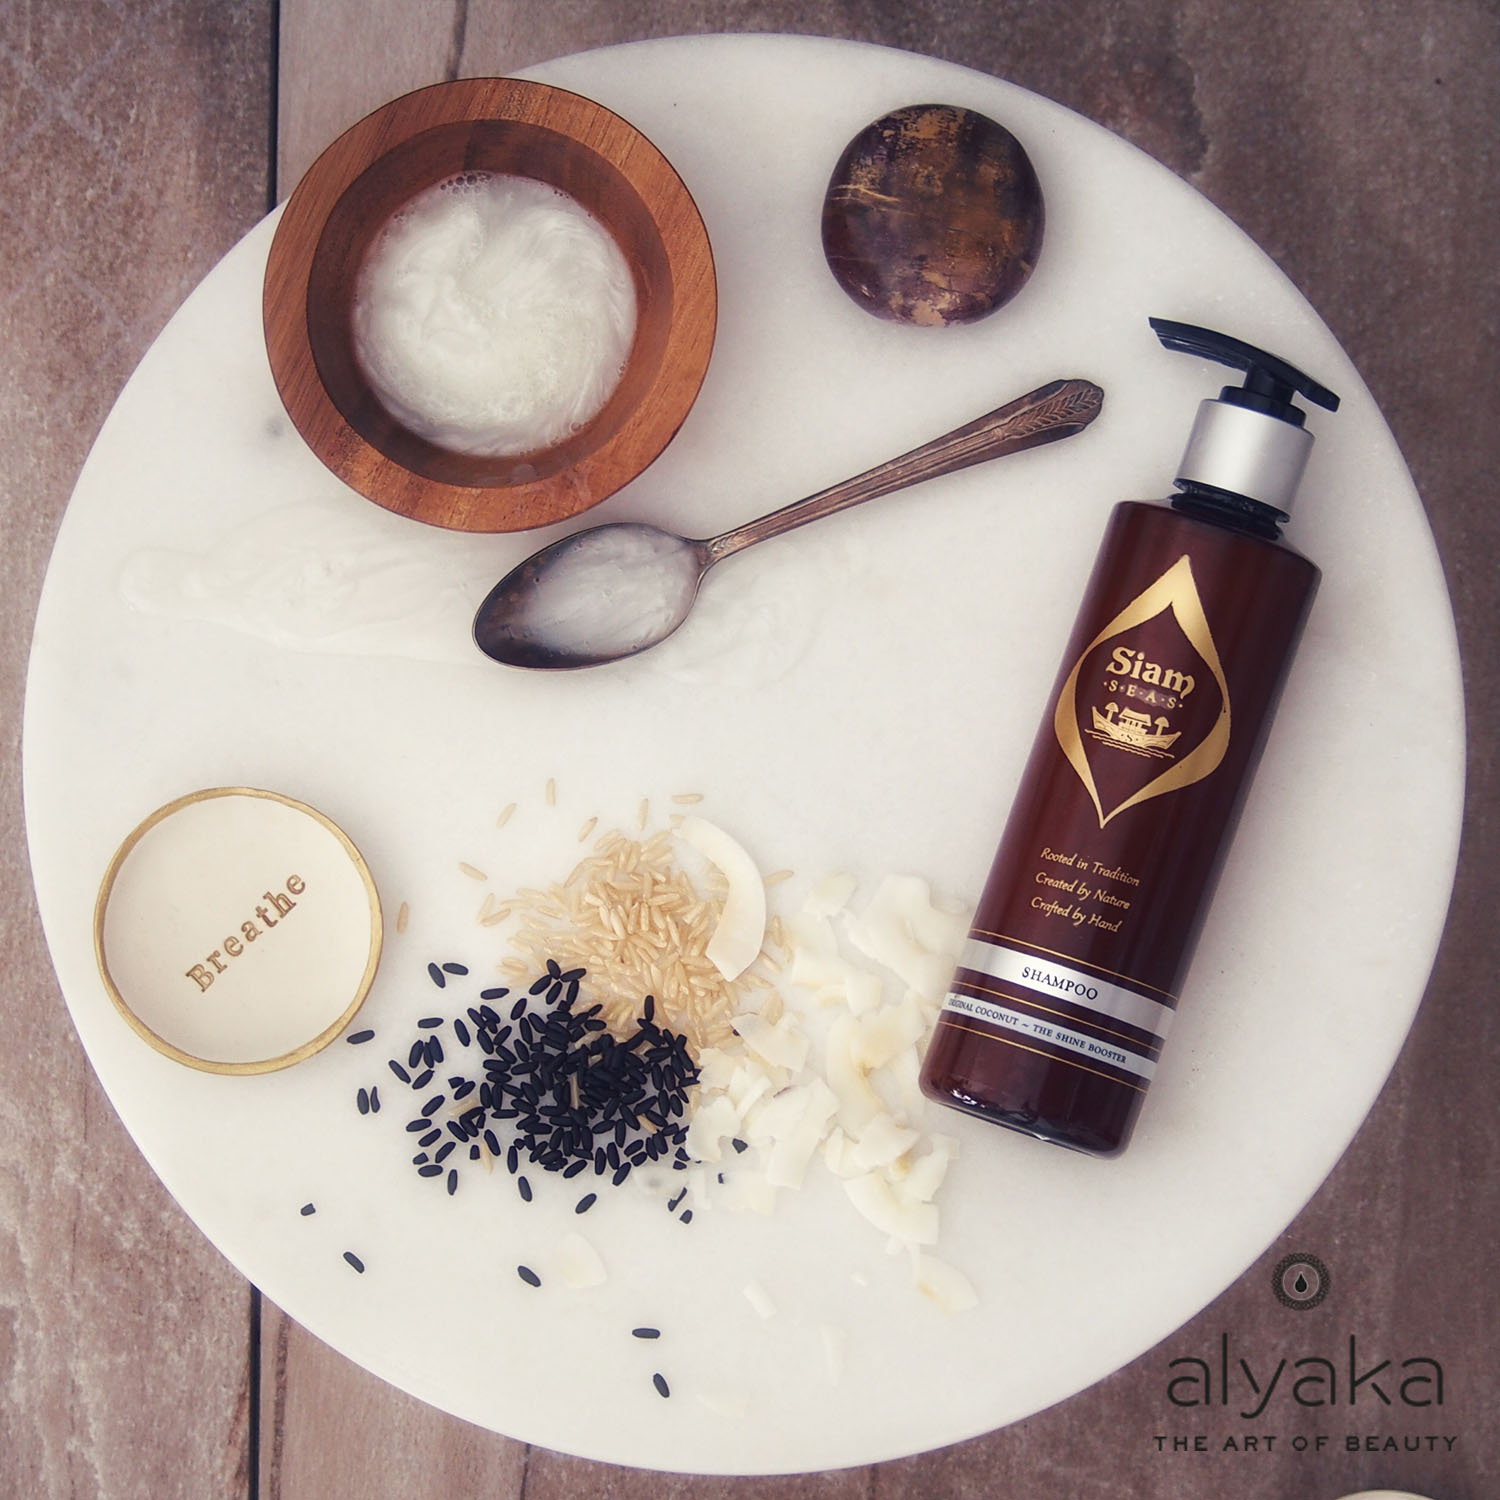 Personal Hair Mask Recipe from Siam Seas